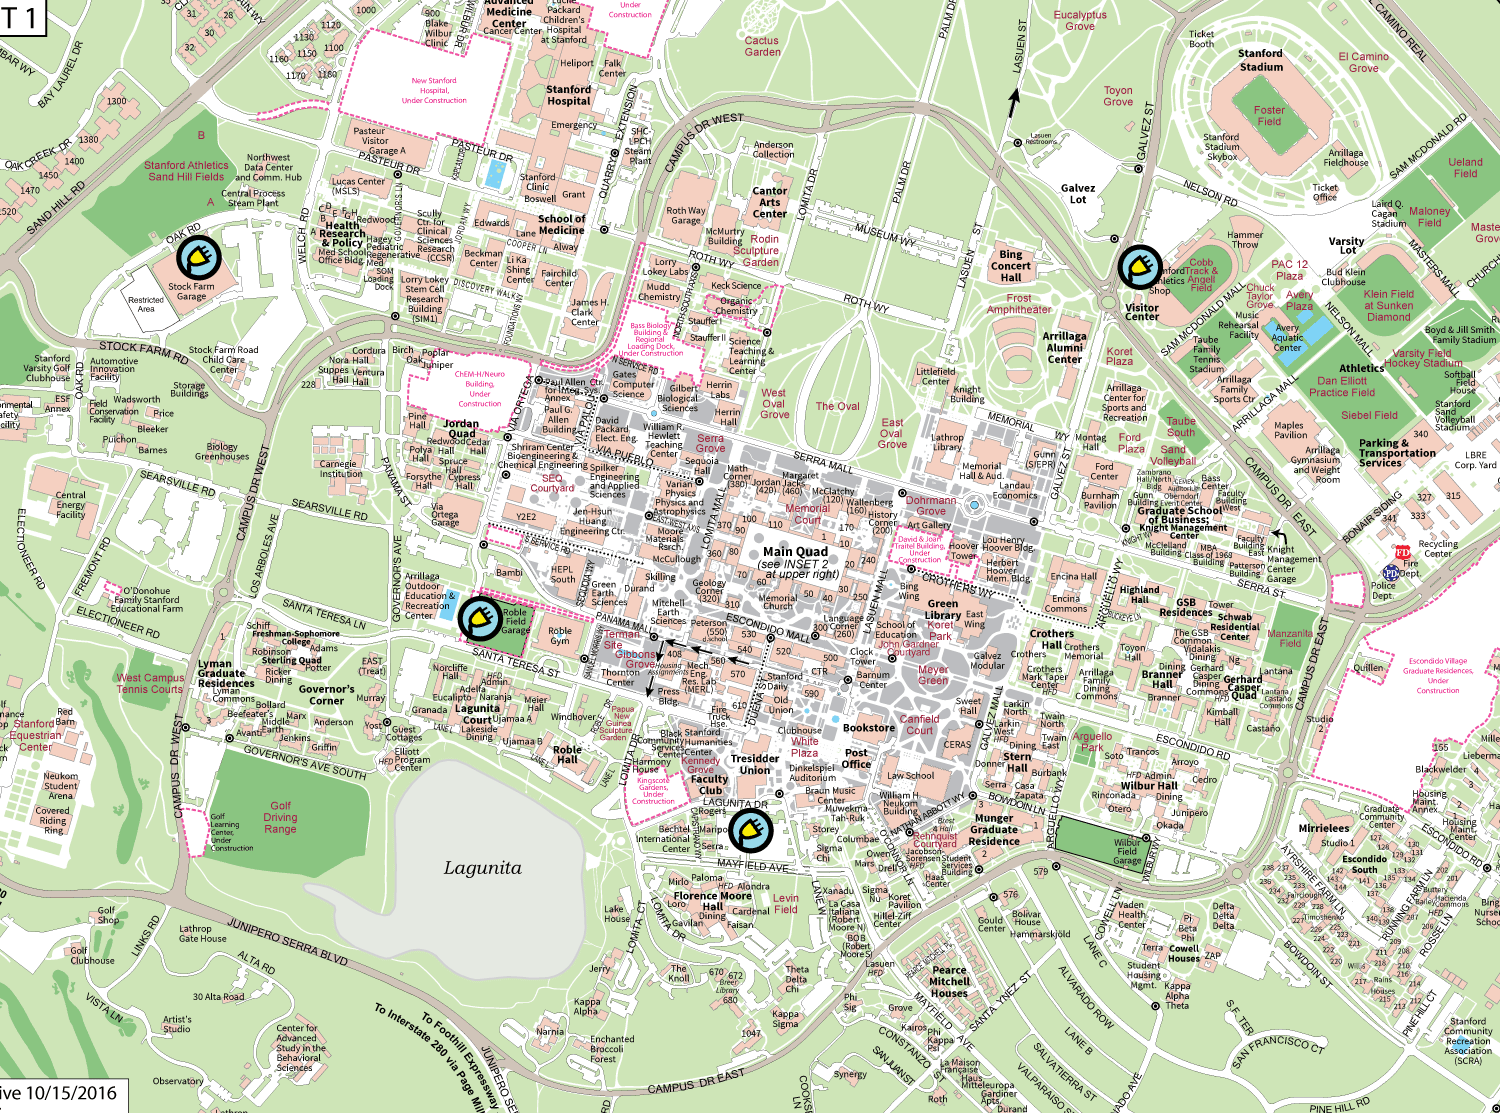 Stanford Univ Campus Map Stanford university map